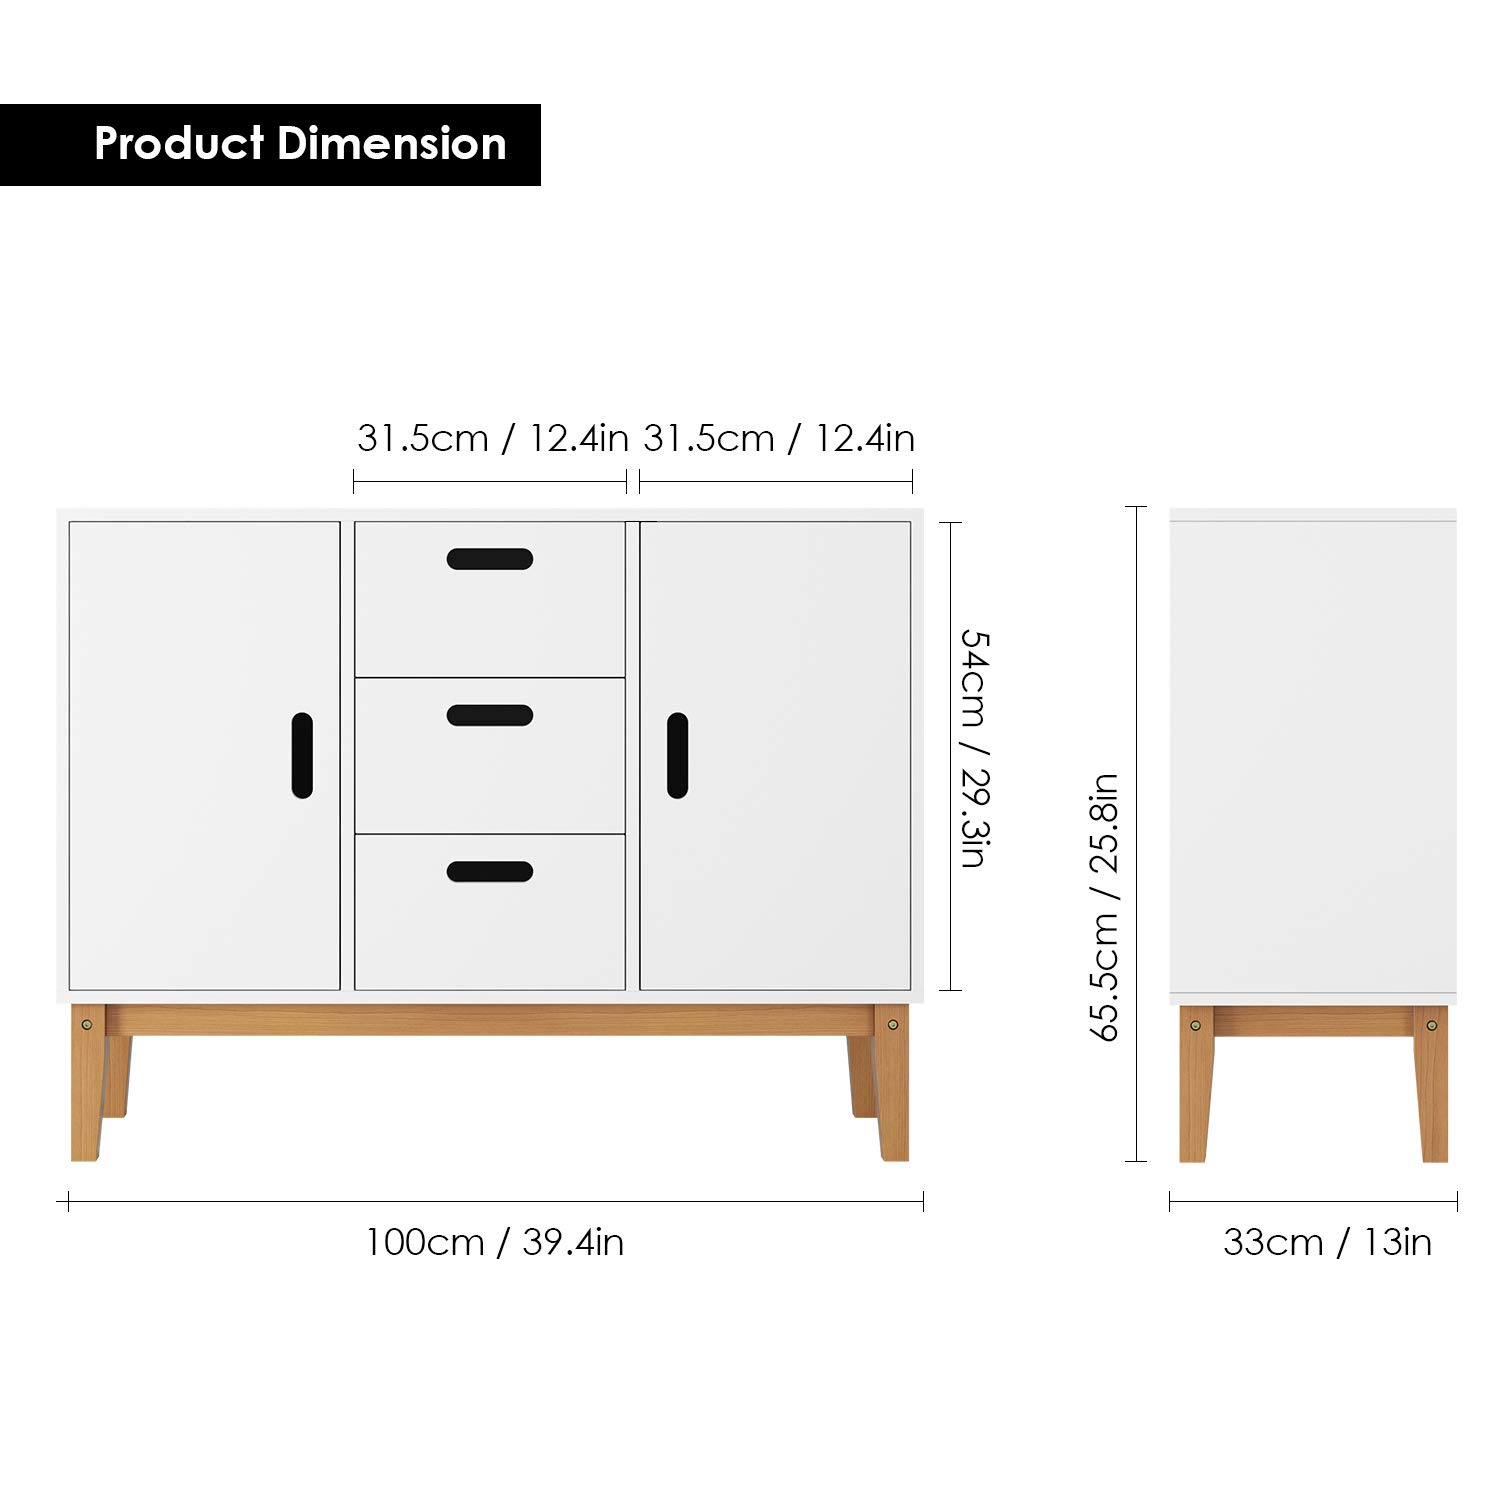 HOMECHO Floor Buffet Sideboard Storage Cabinet Freestanding Console Table Cupboard Chest 2 Door, 3 Drawers and 2 Inside Adjustment Shelf for Hallway, Living Room and Kitchen White Color HMC-MD-004 by HOMECHO (Image #2)